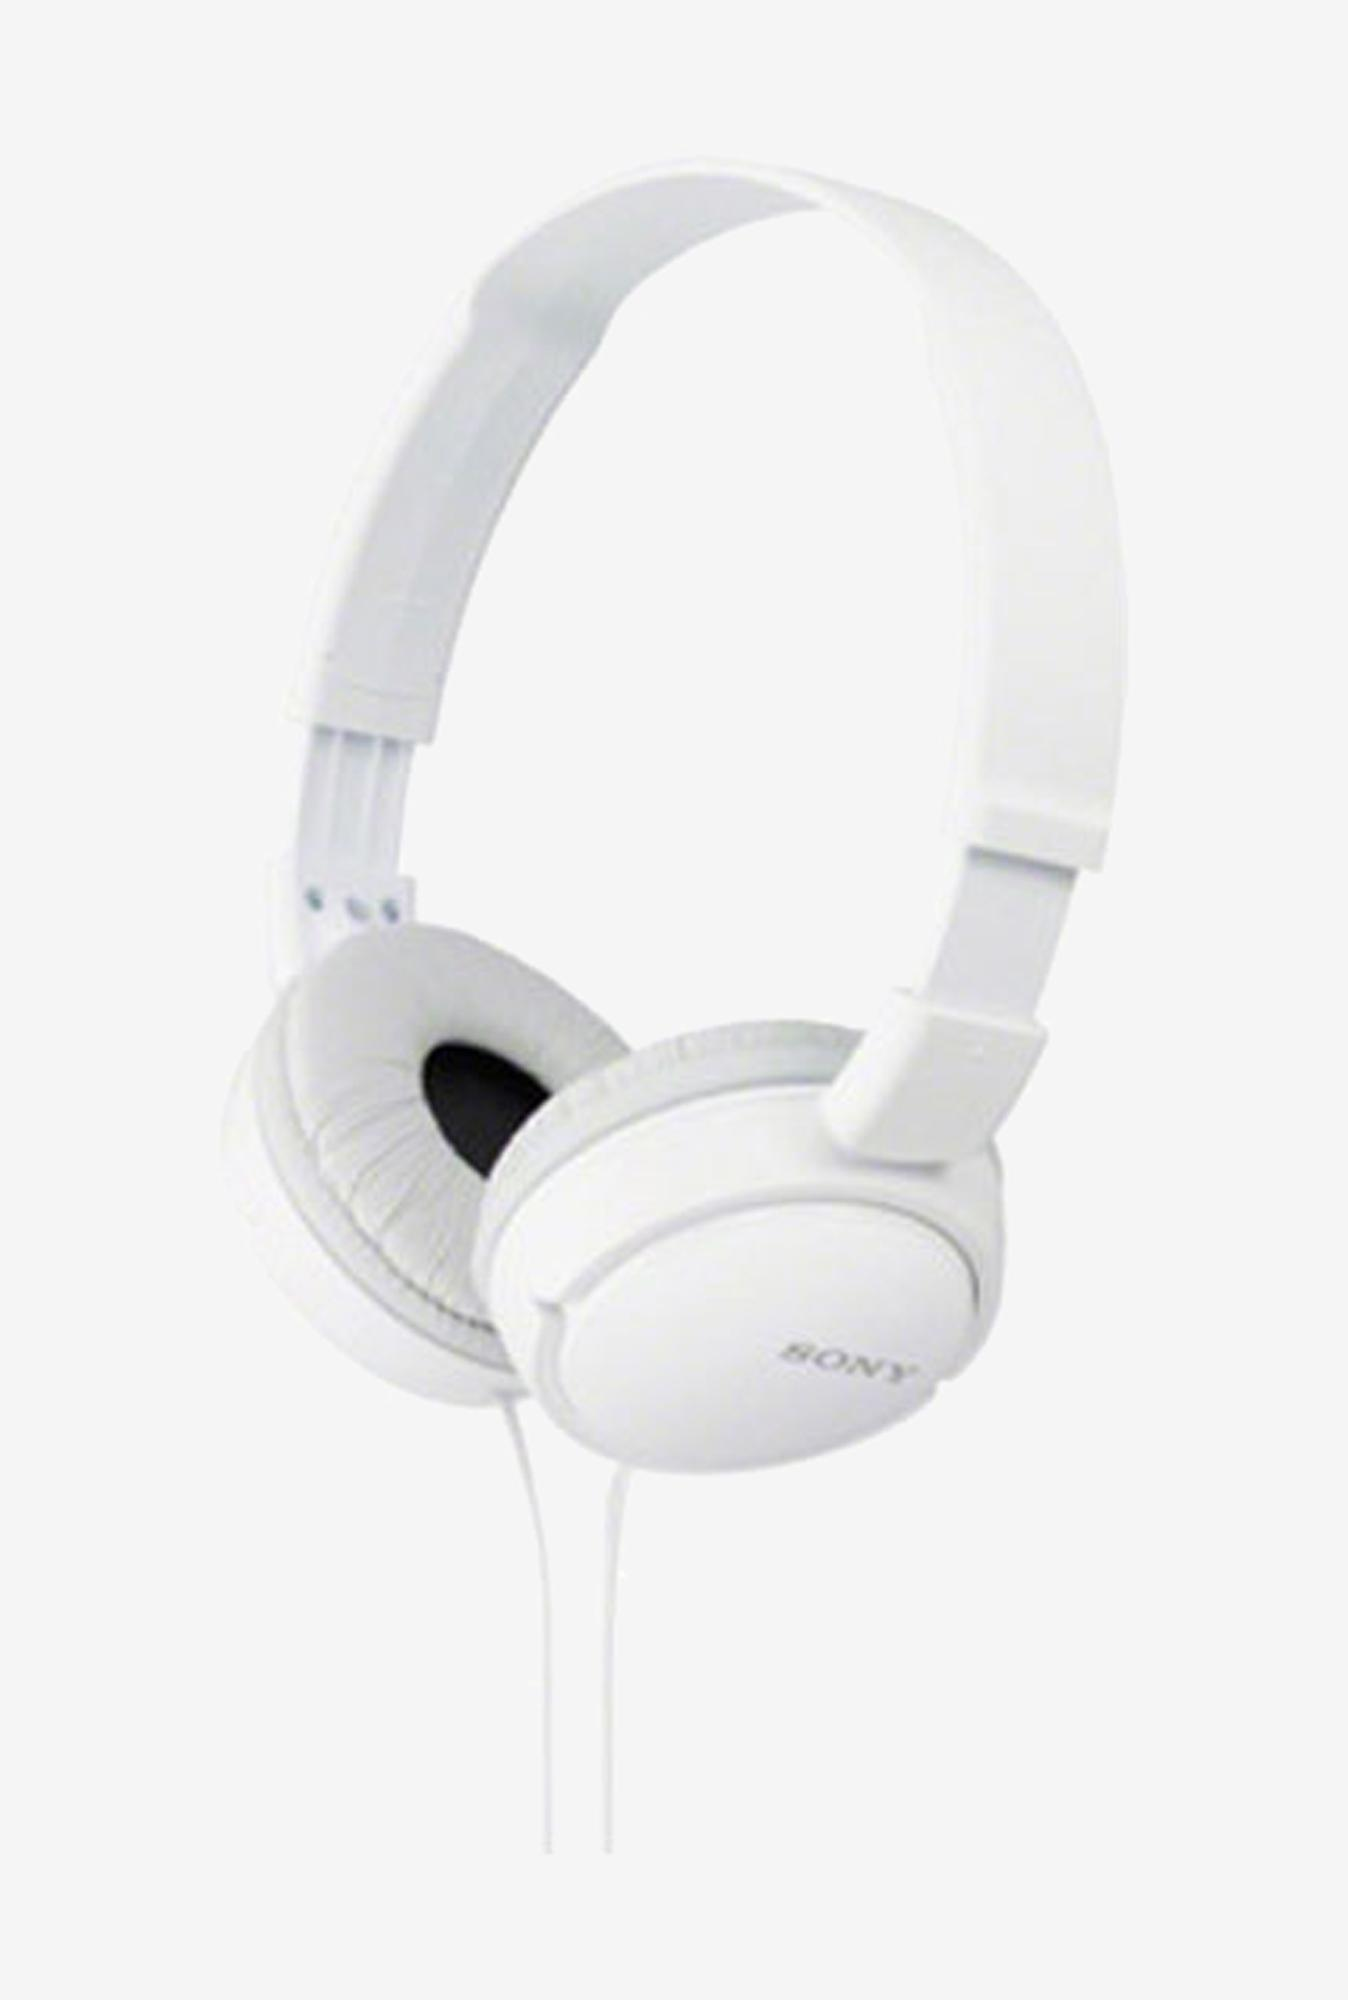 Sony MDR-ZX110A On the Ear Headphone, White